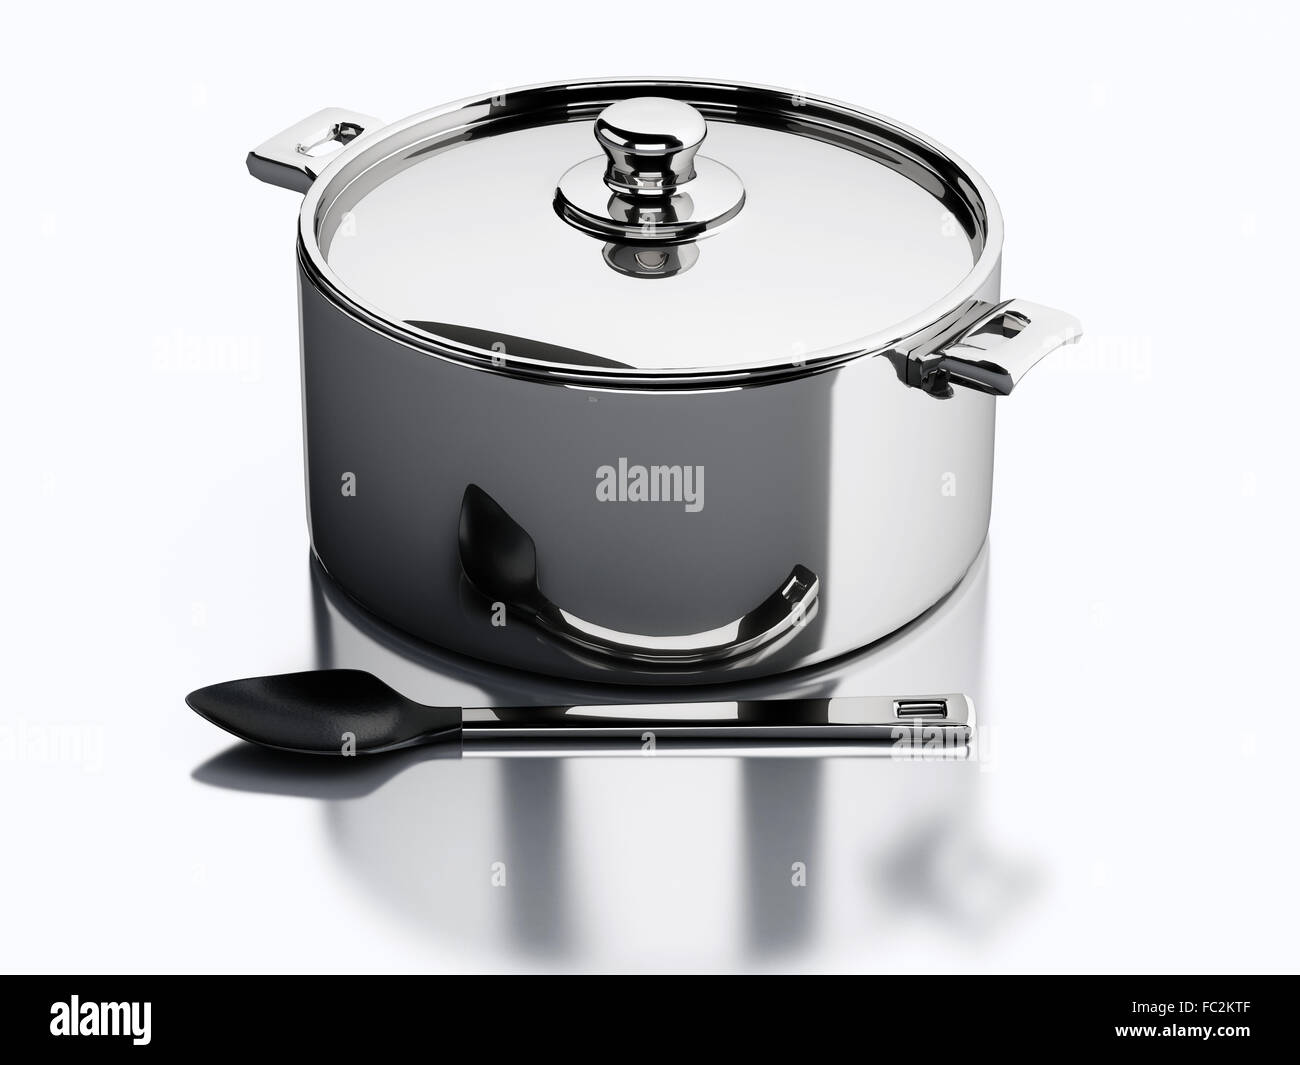 Bilder Küchenutensilien Steel Cooking Pot 3d Render Stockfotos And Steel Cooking Pot